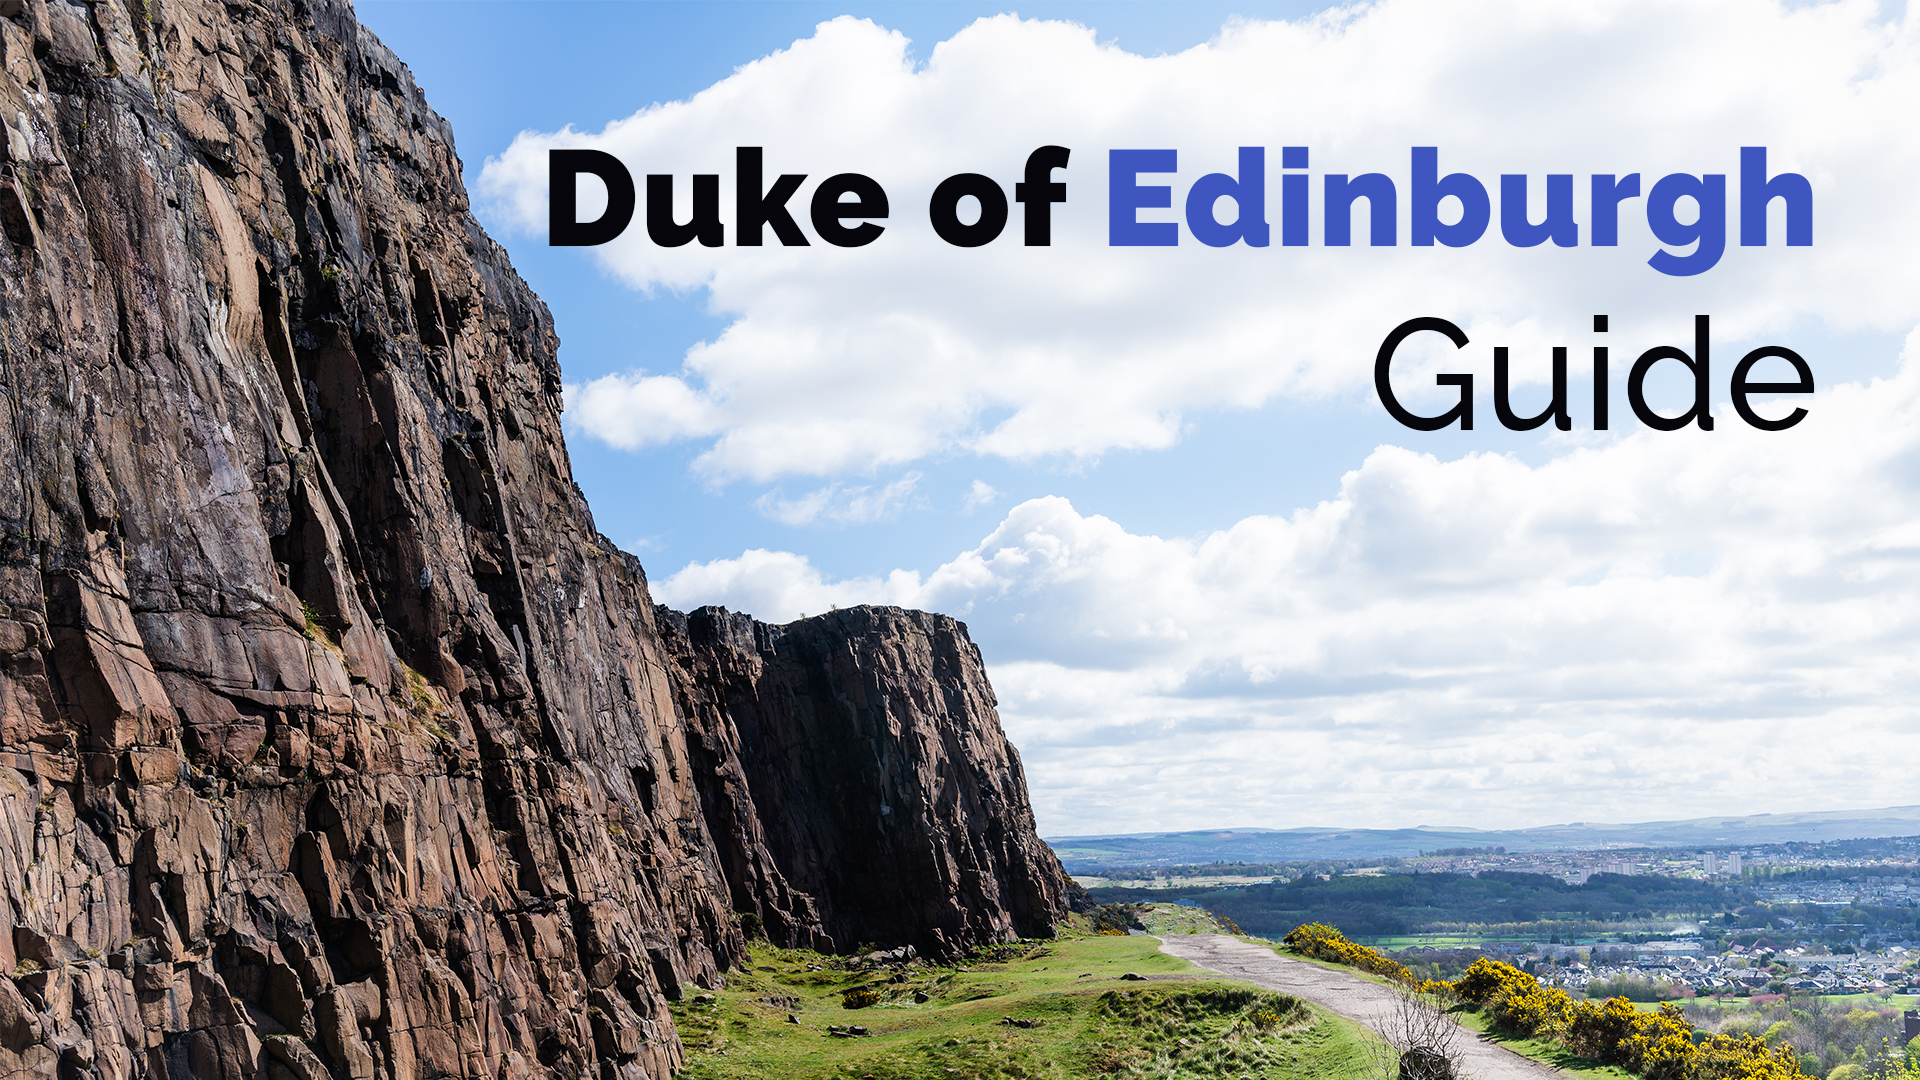 Duke of Edinburgh Guide